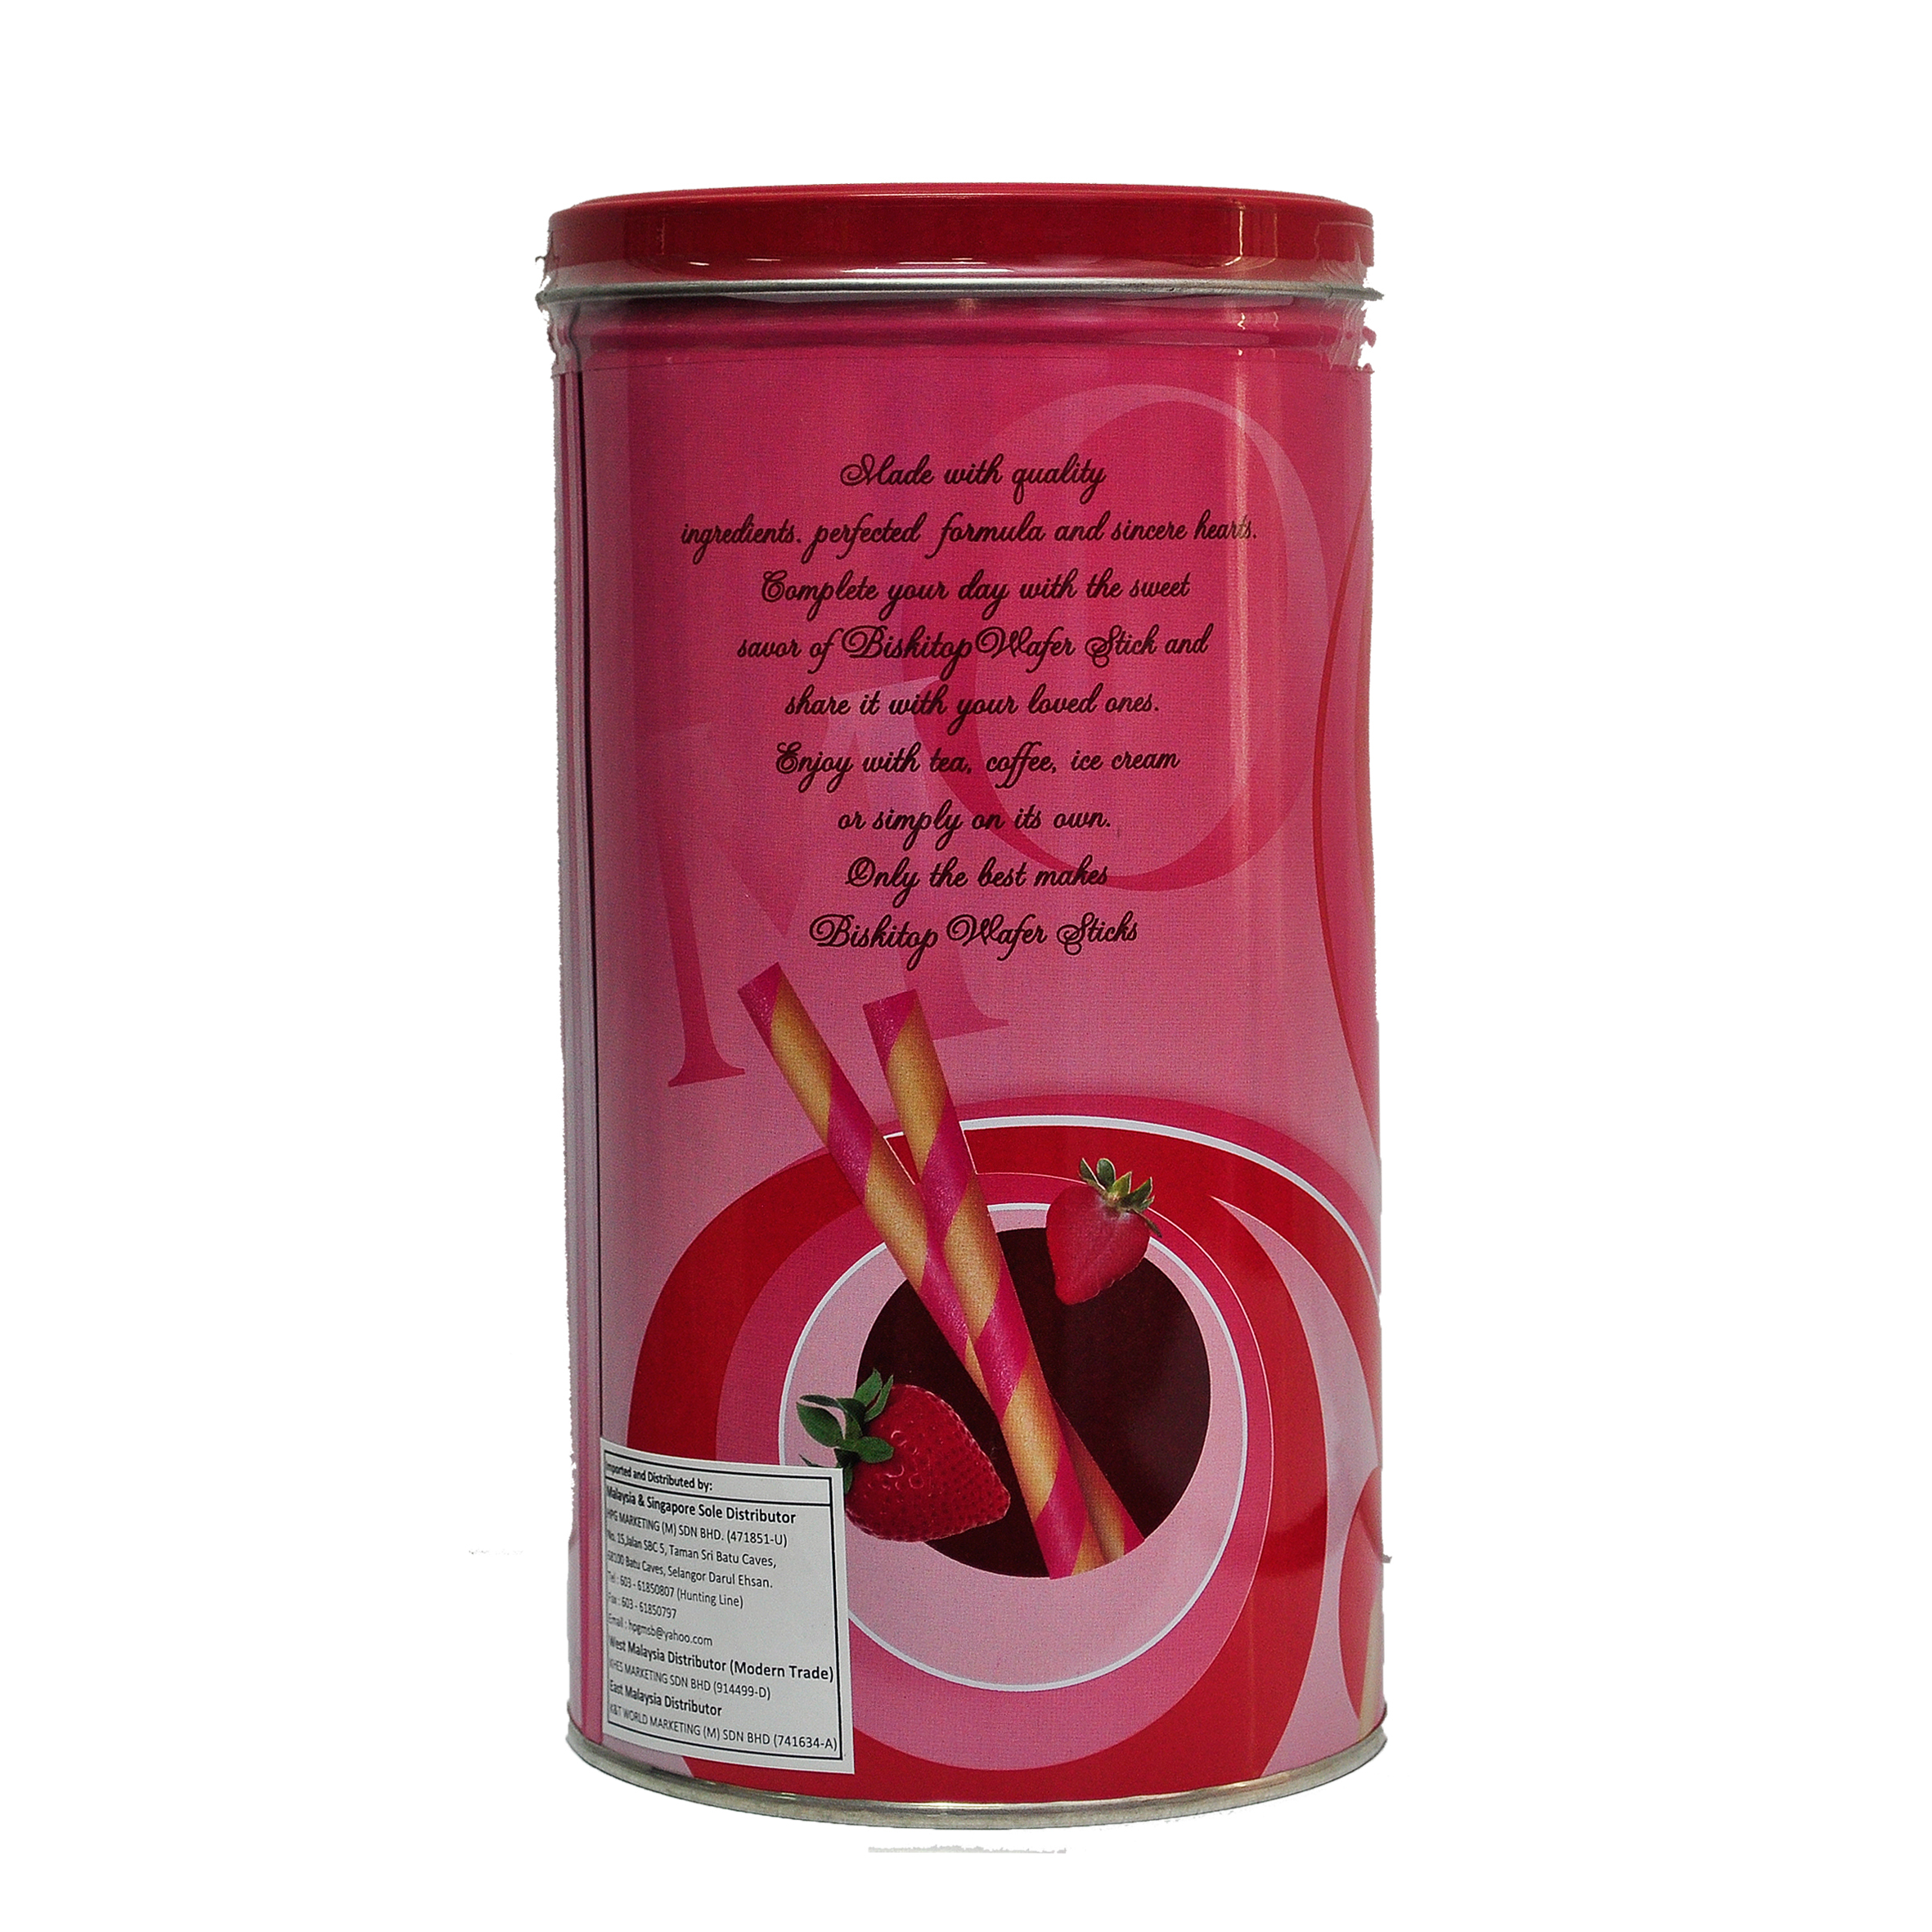 Biskitop Wafer Stick Strrawberry Tins Side.jpg